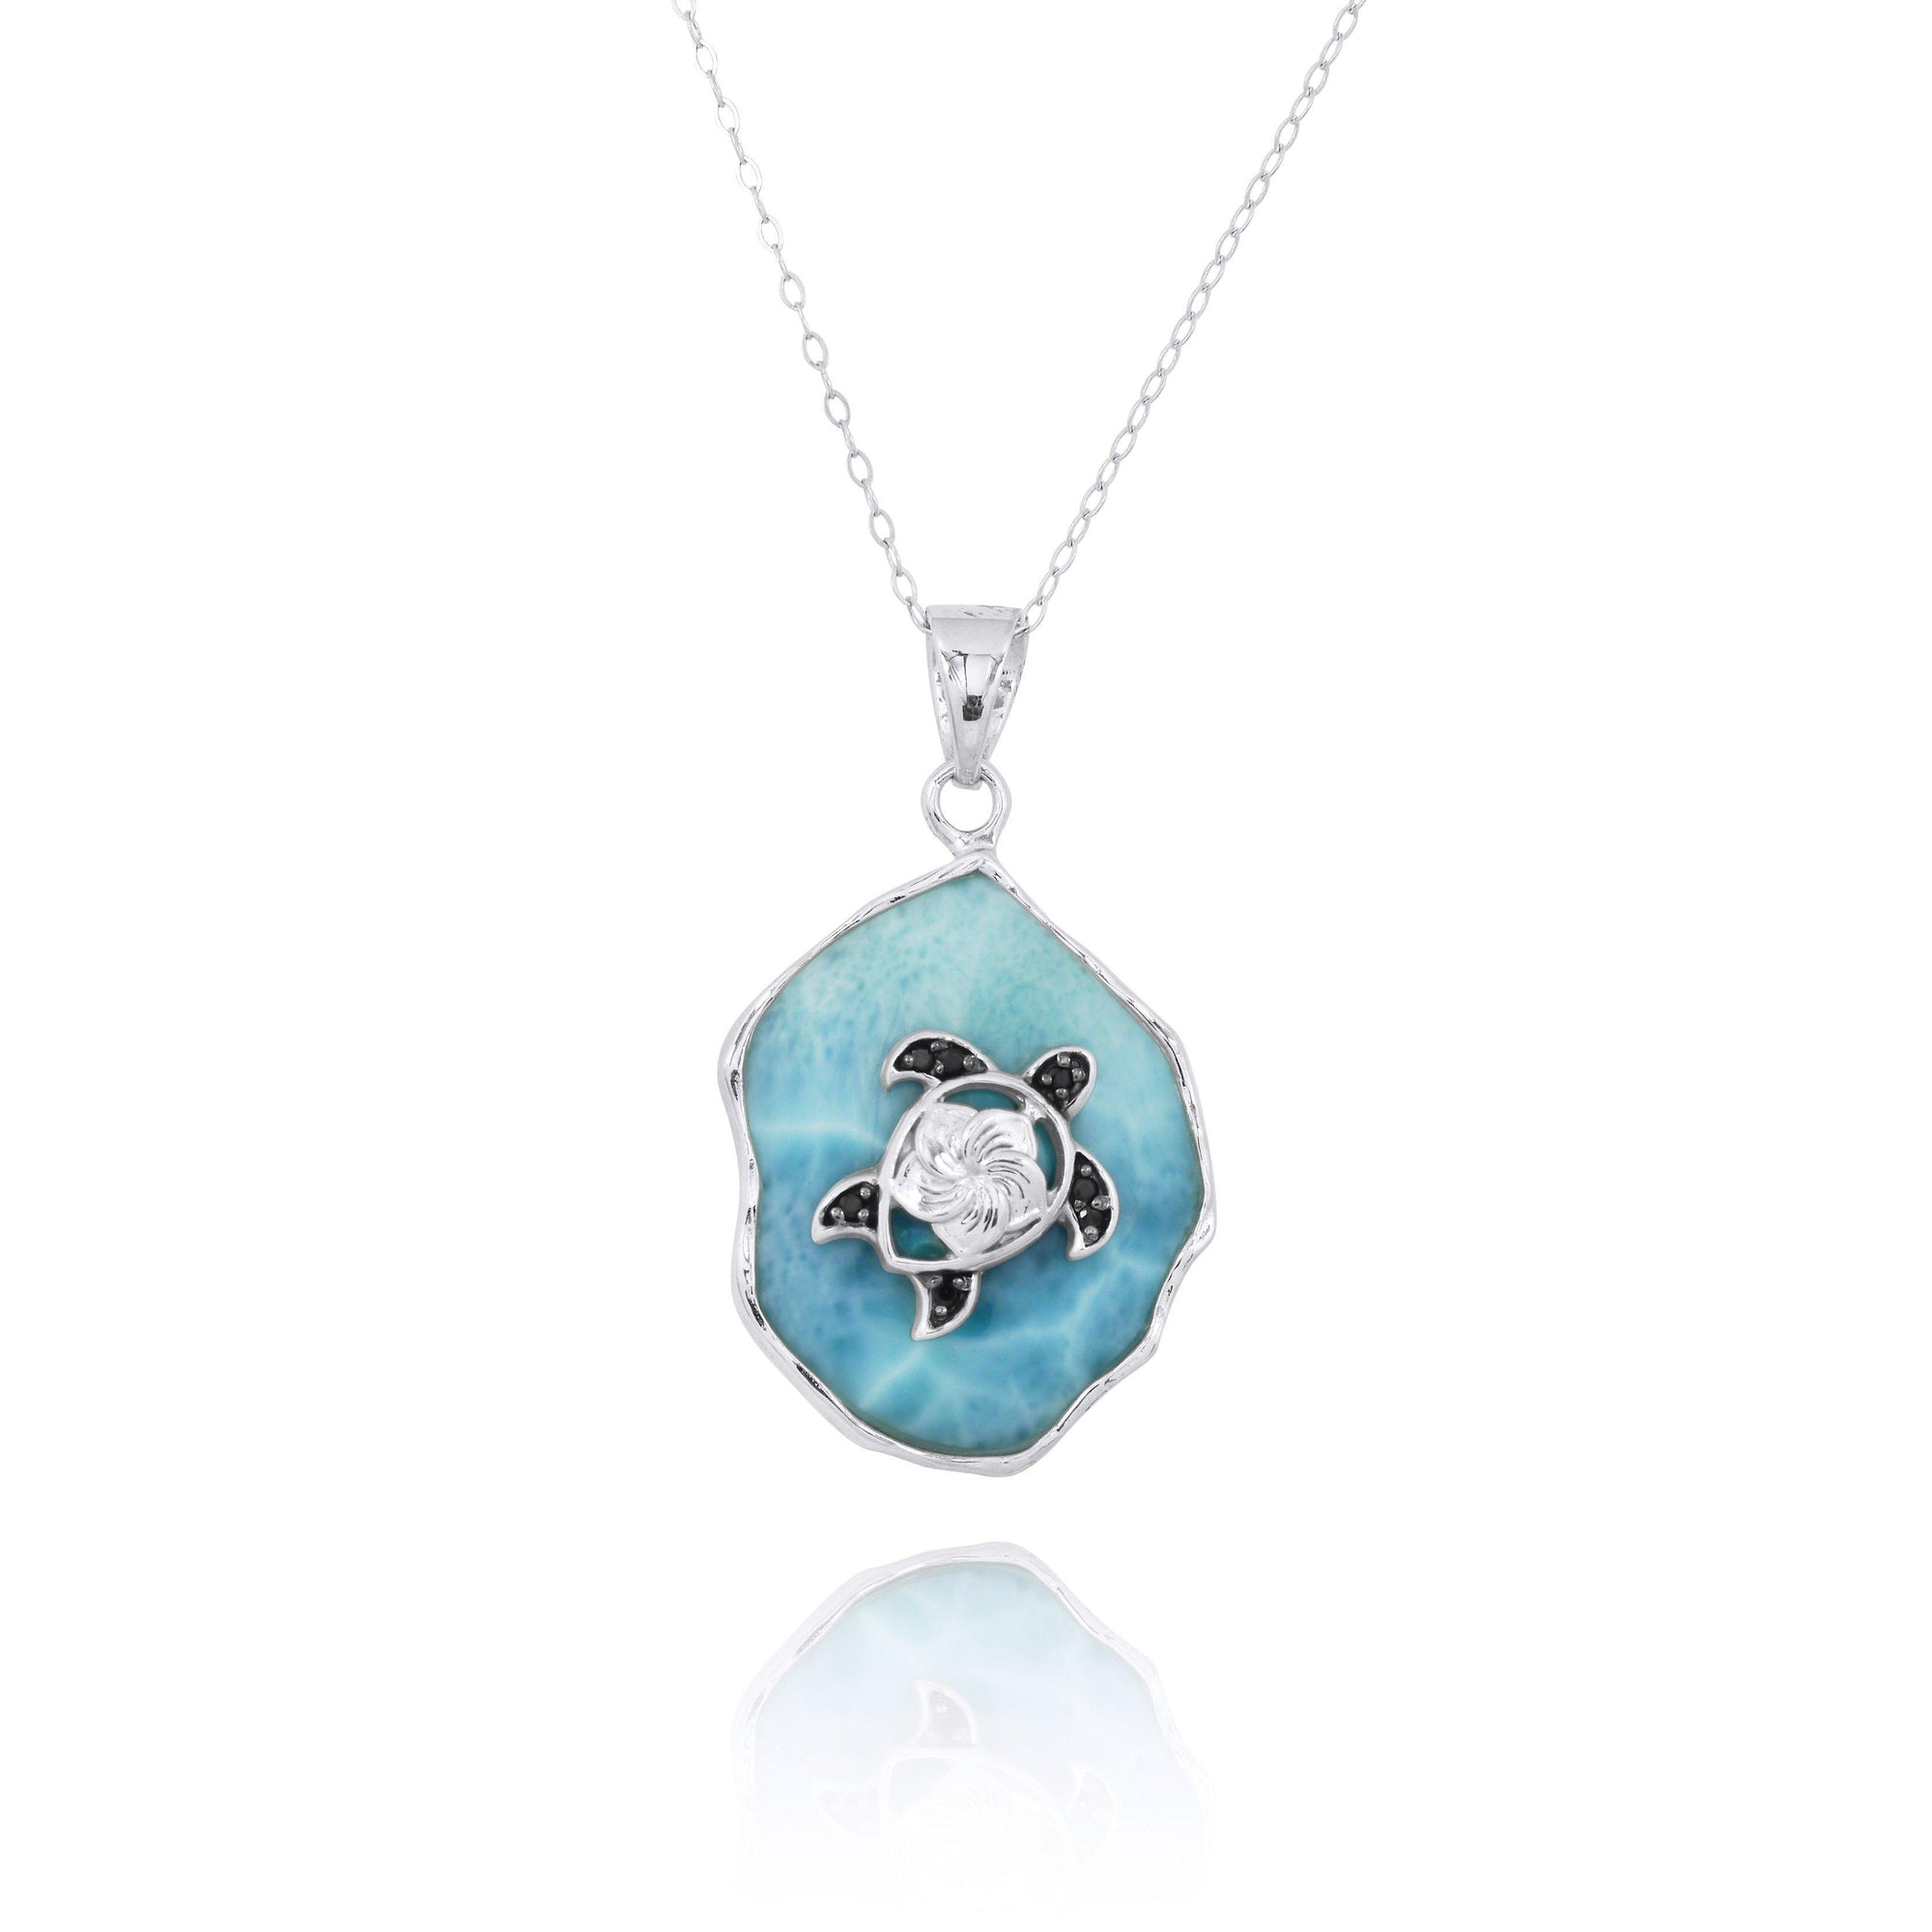 Larimar Pendant Necklace with Sterling Silver Turtle and Black Spinel